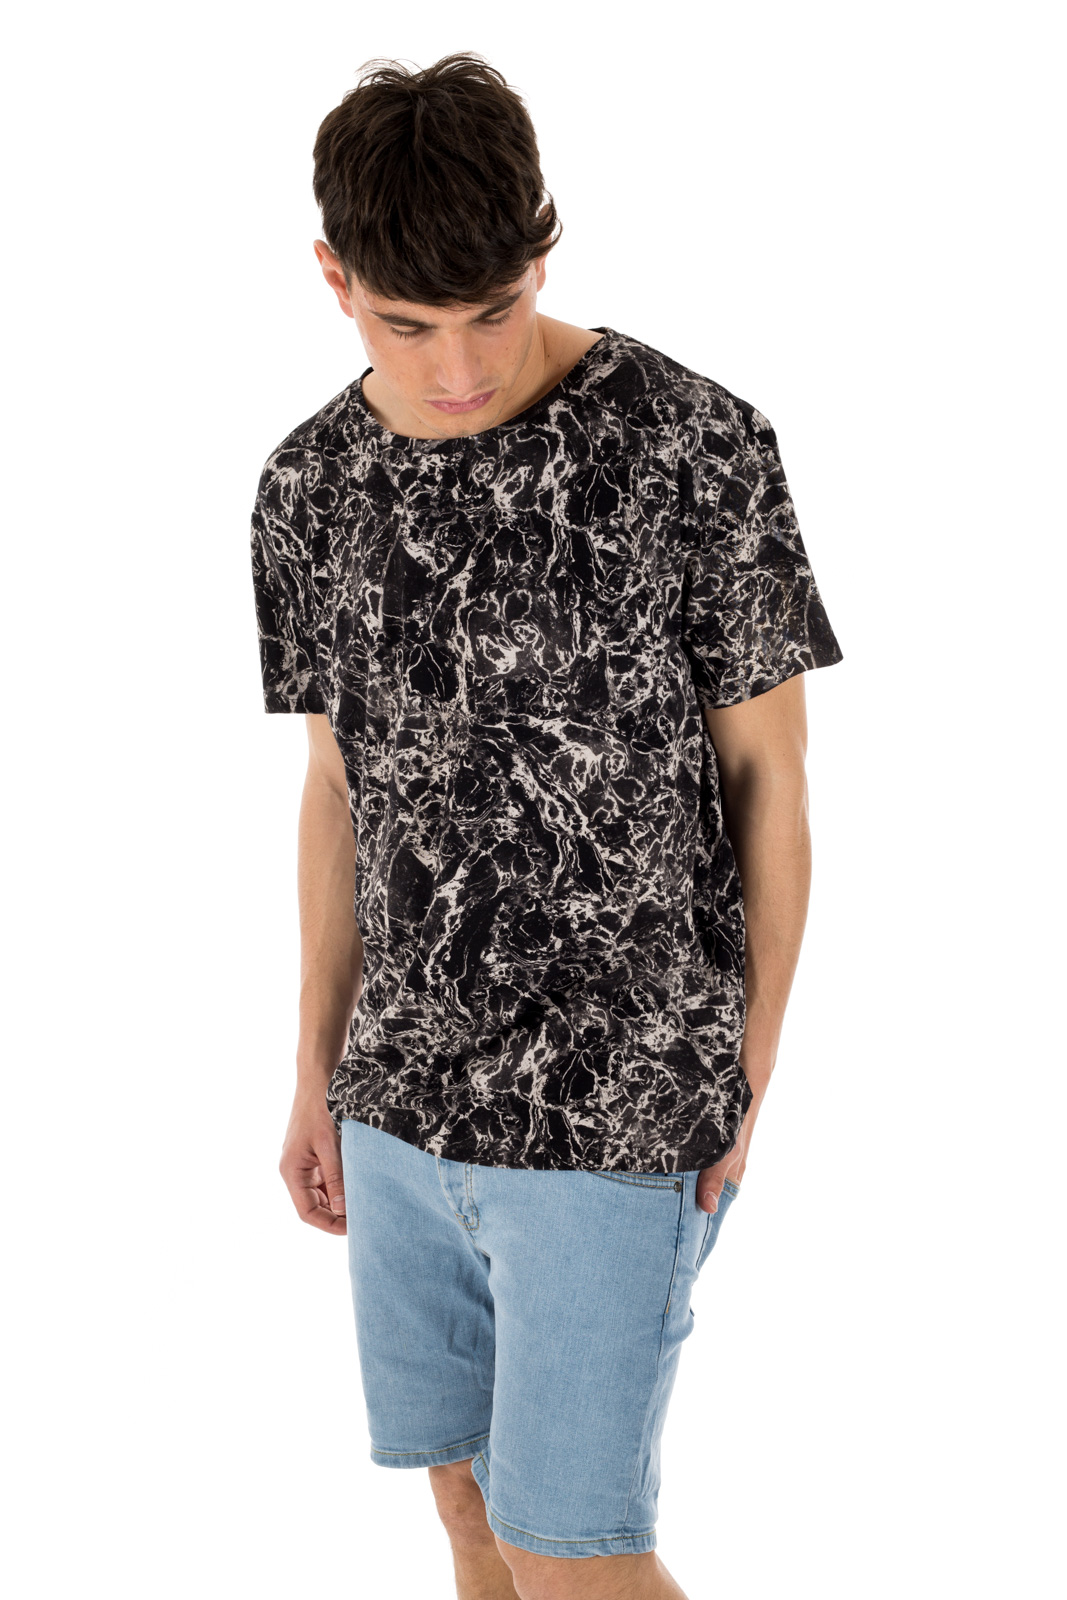 Dr. Denim - Russ T-shirt black oil